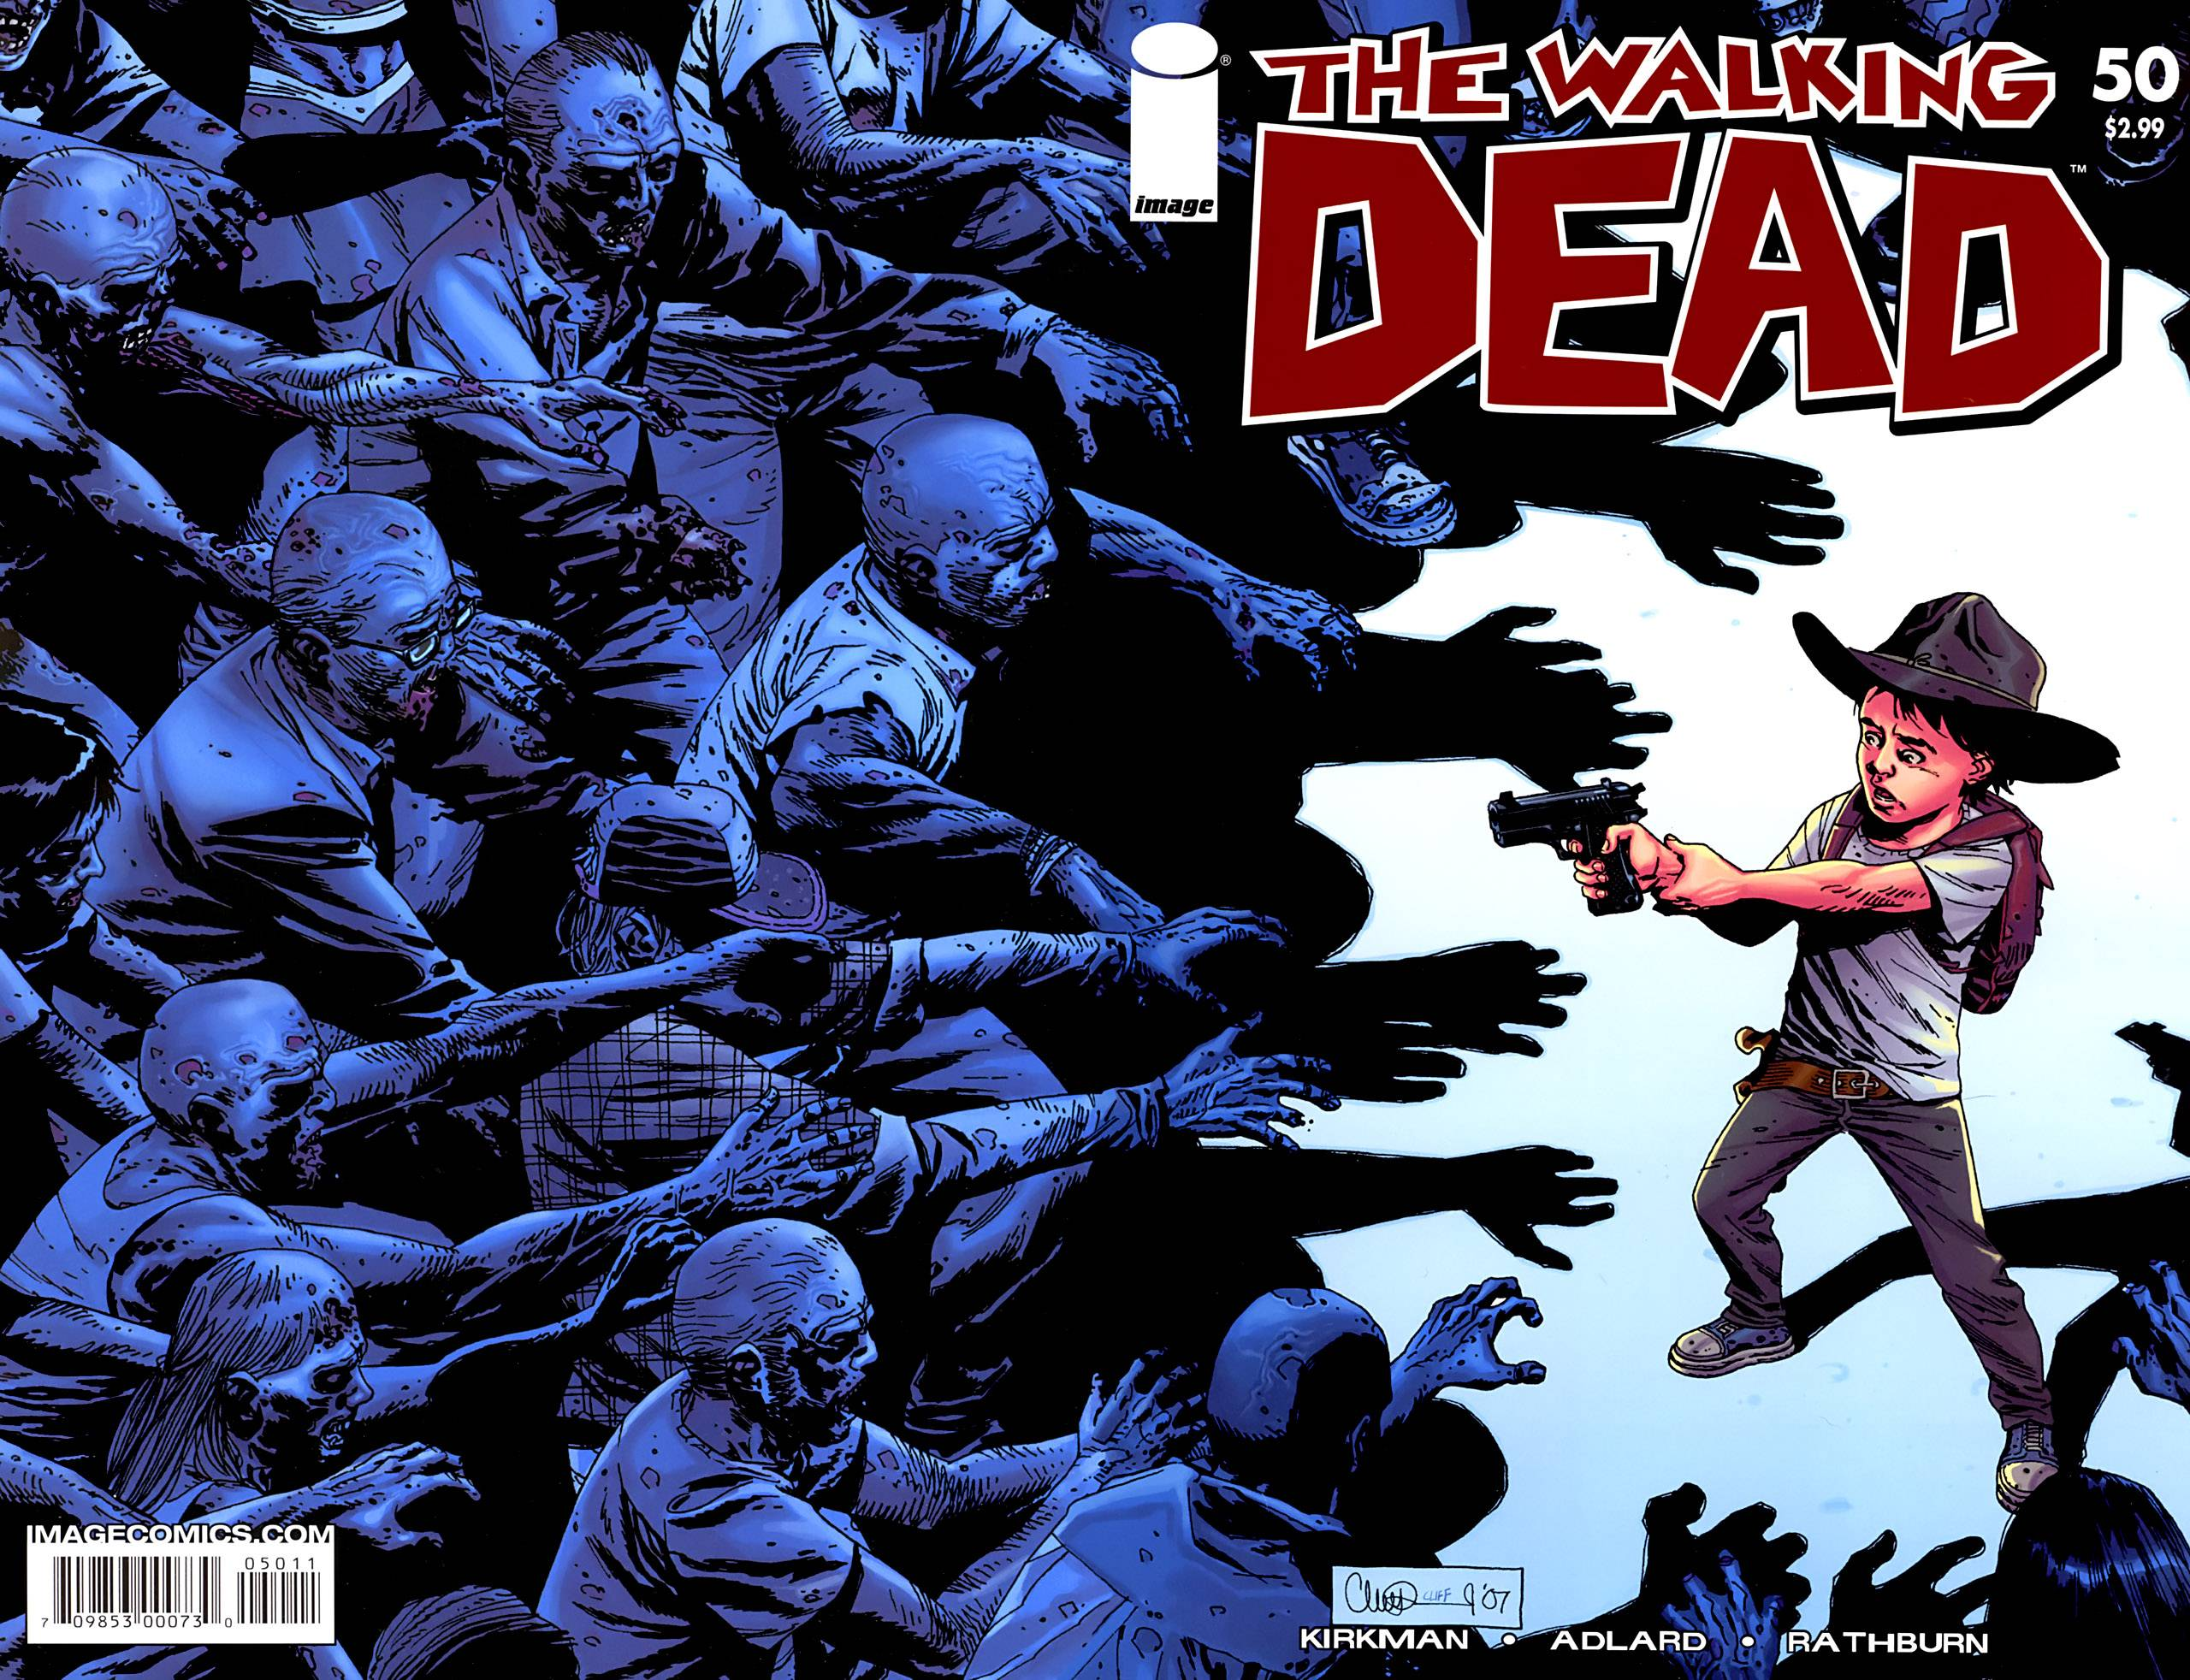 The Walking Dead Comic Book Wallpaper